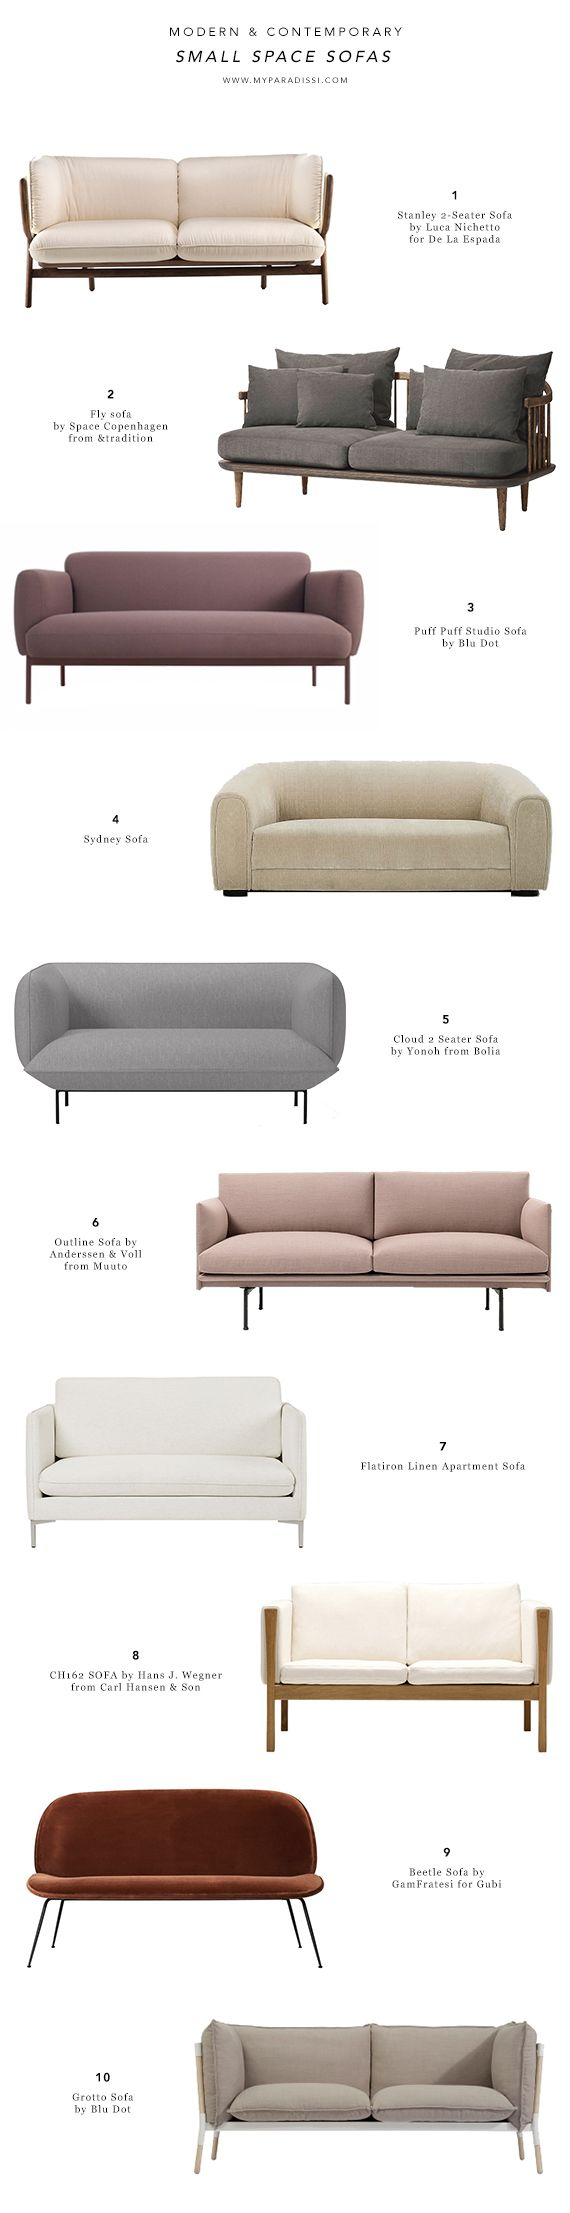 Simplicity sofas for sale - 10 Best Contemporary Small Space Sofas